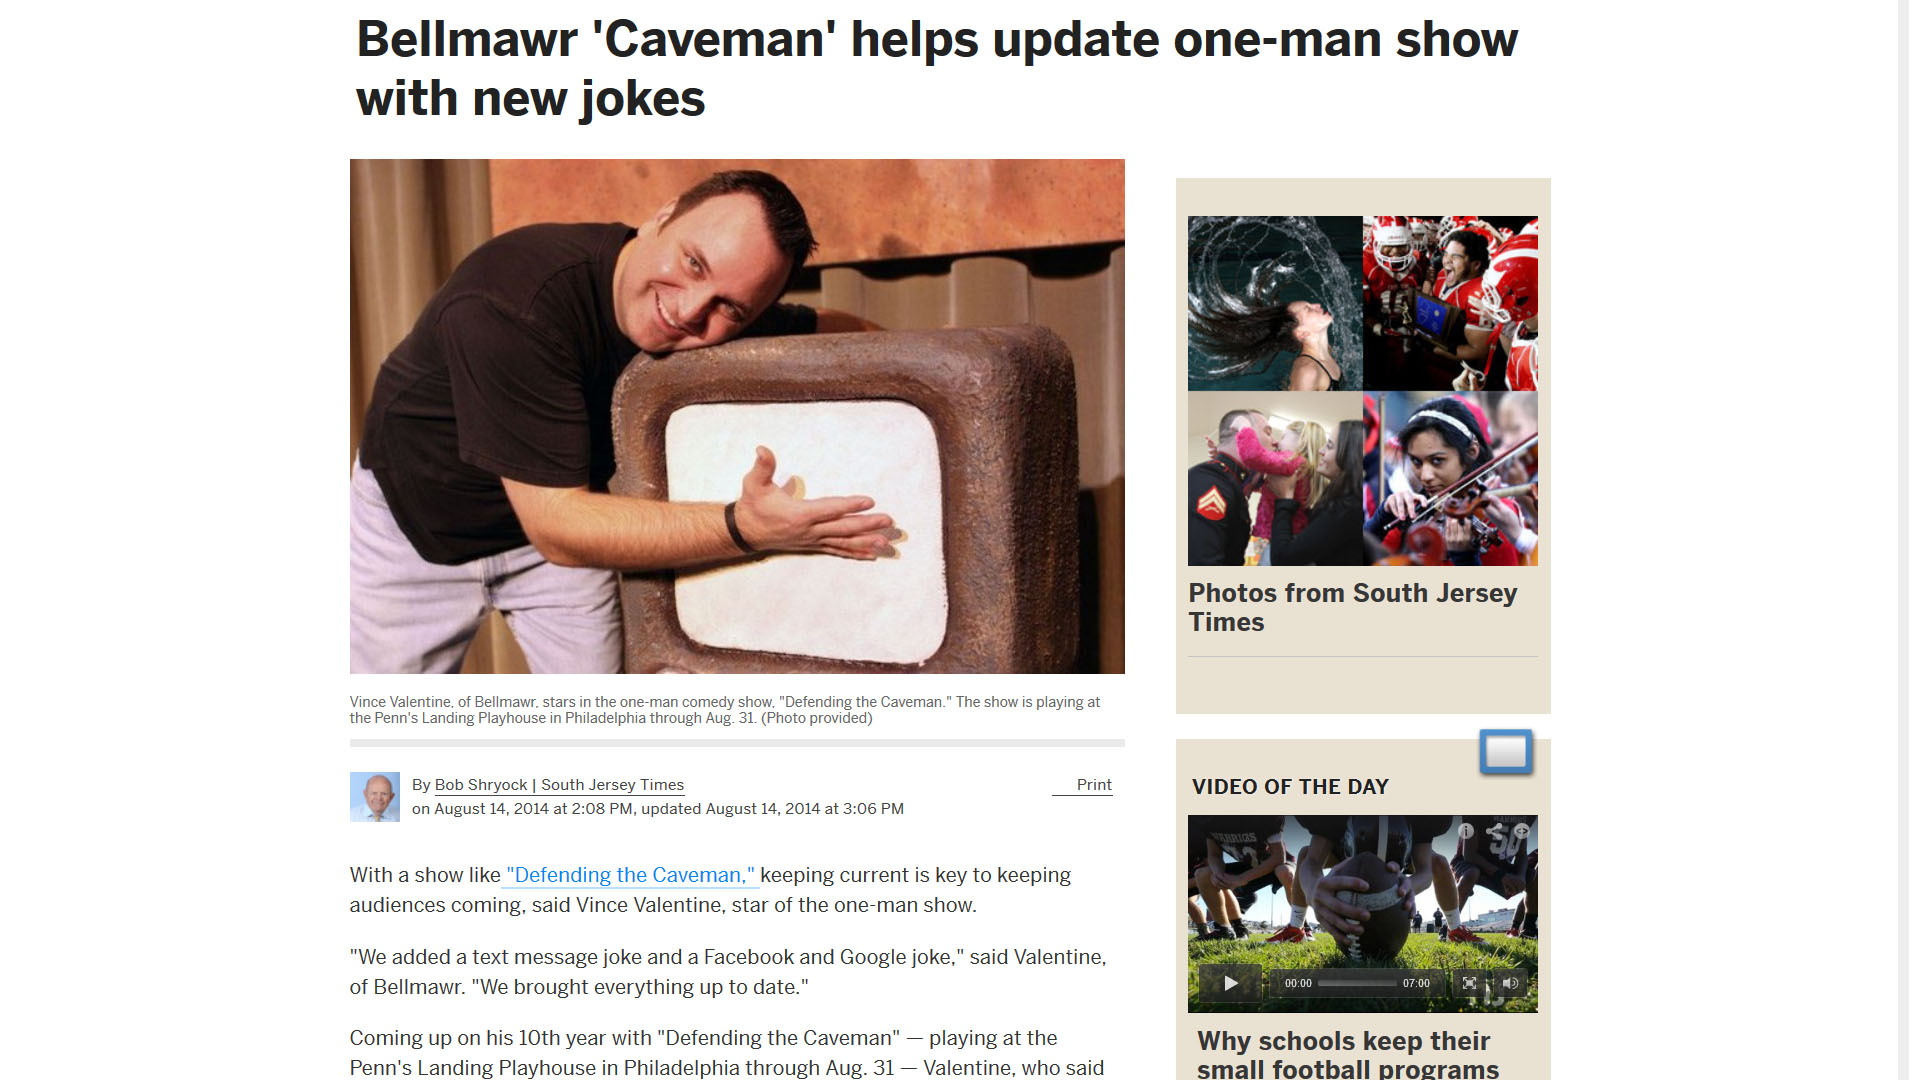 Bellmawr 'Caveman' helps update one-man show with new jokes